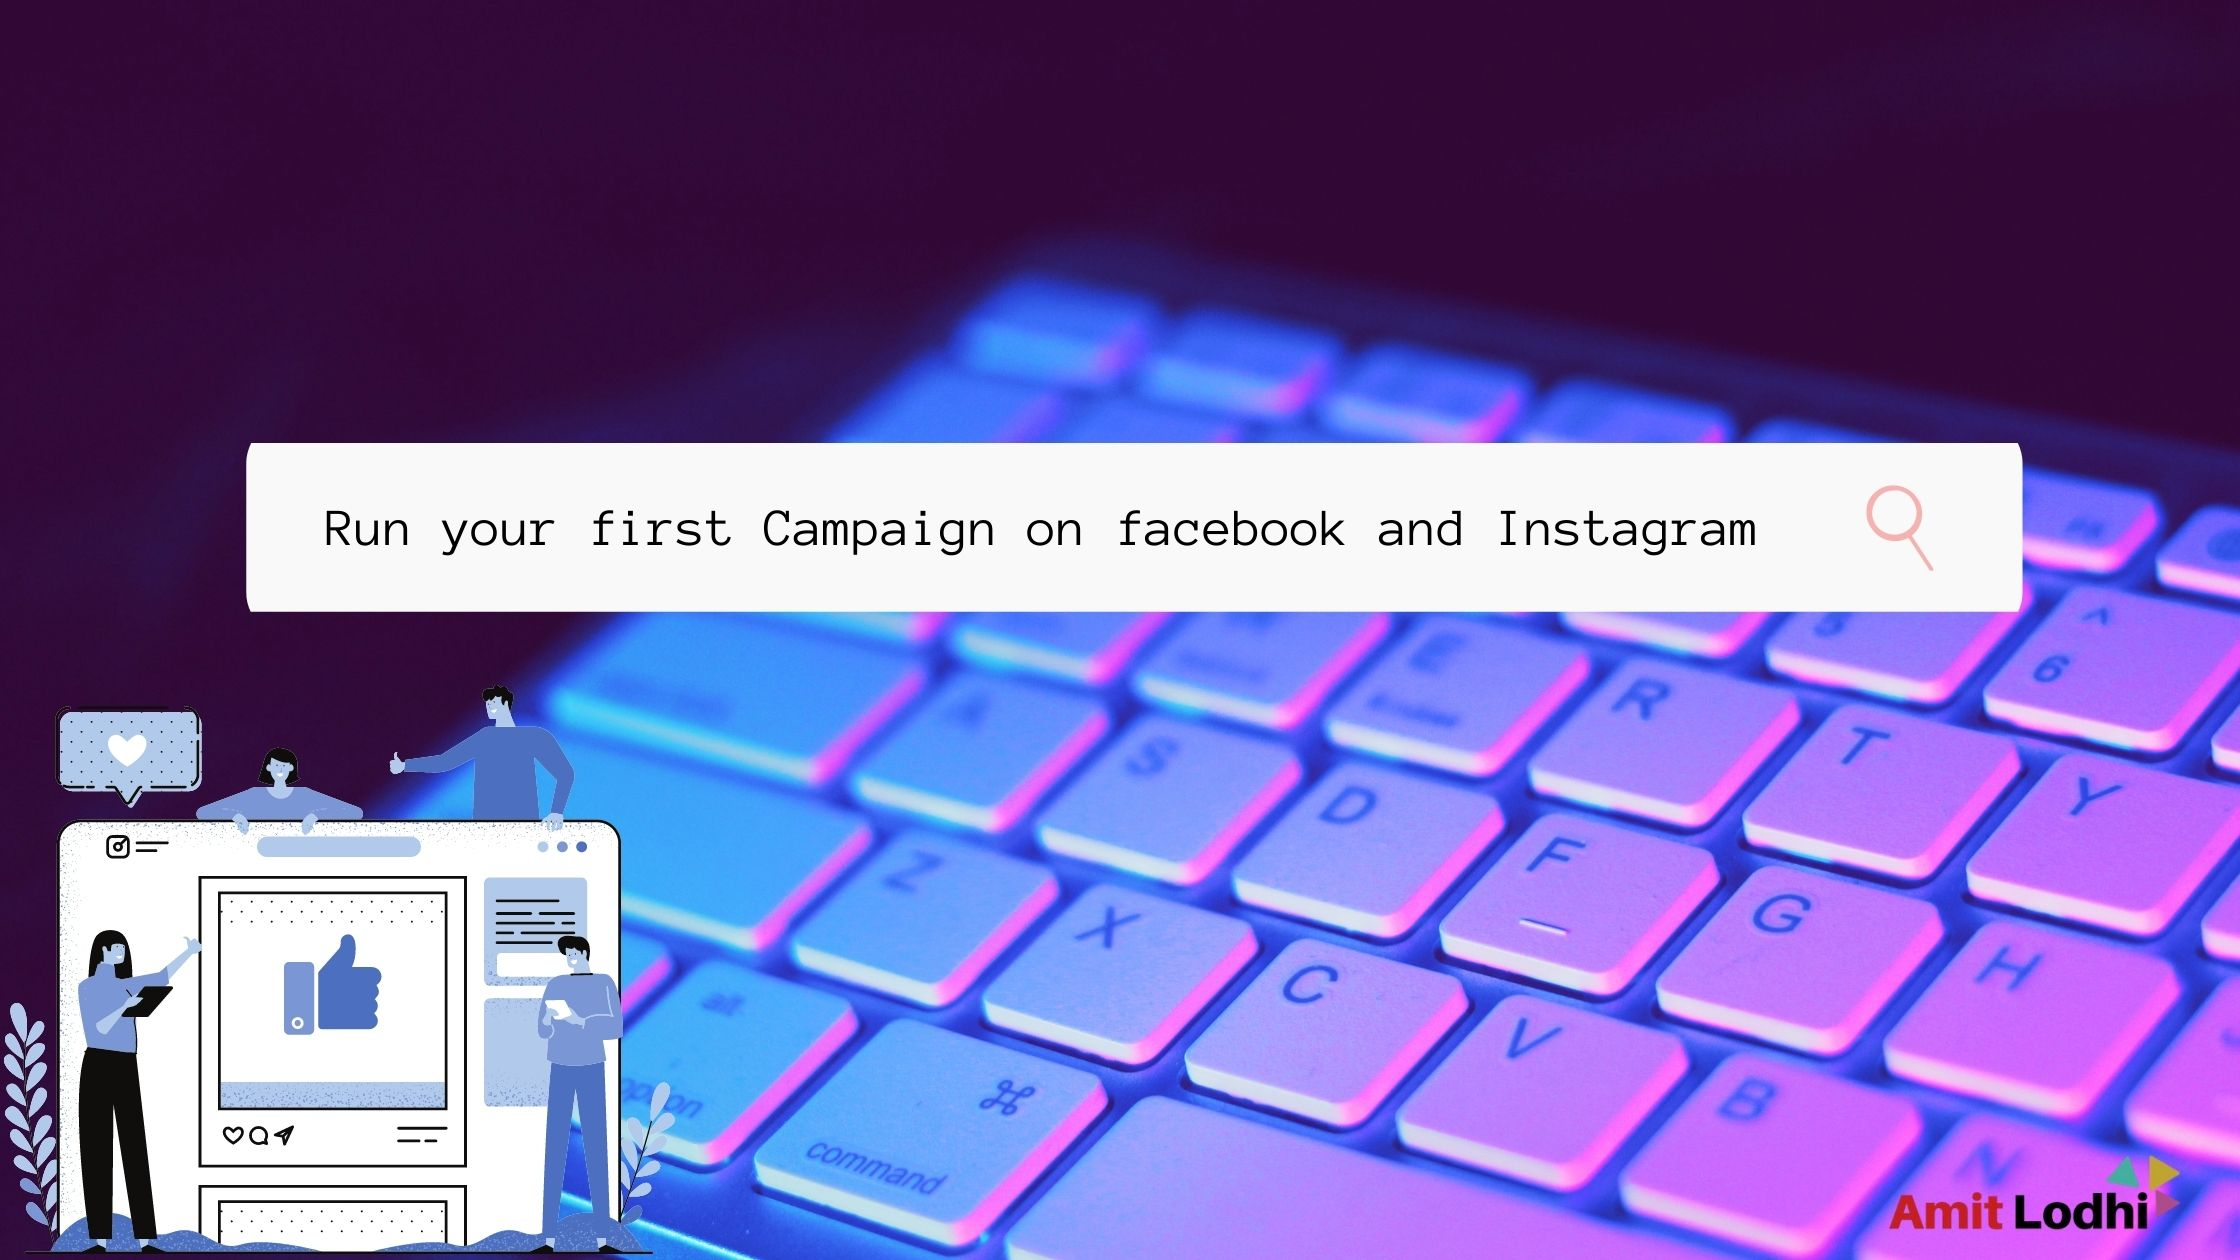 Run your first Campaign on Facebook and Instagram (1)